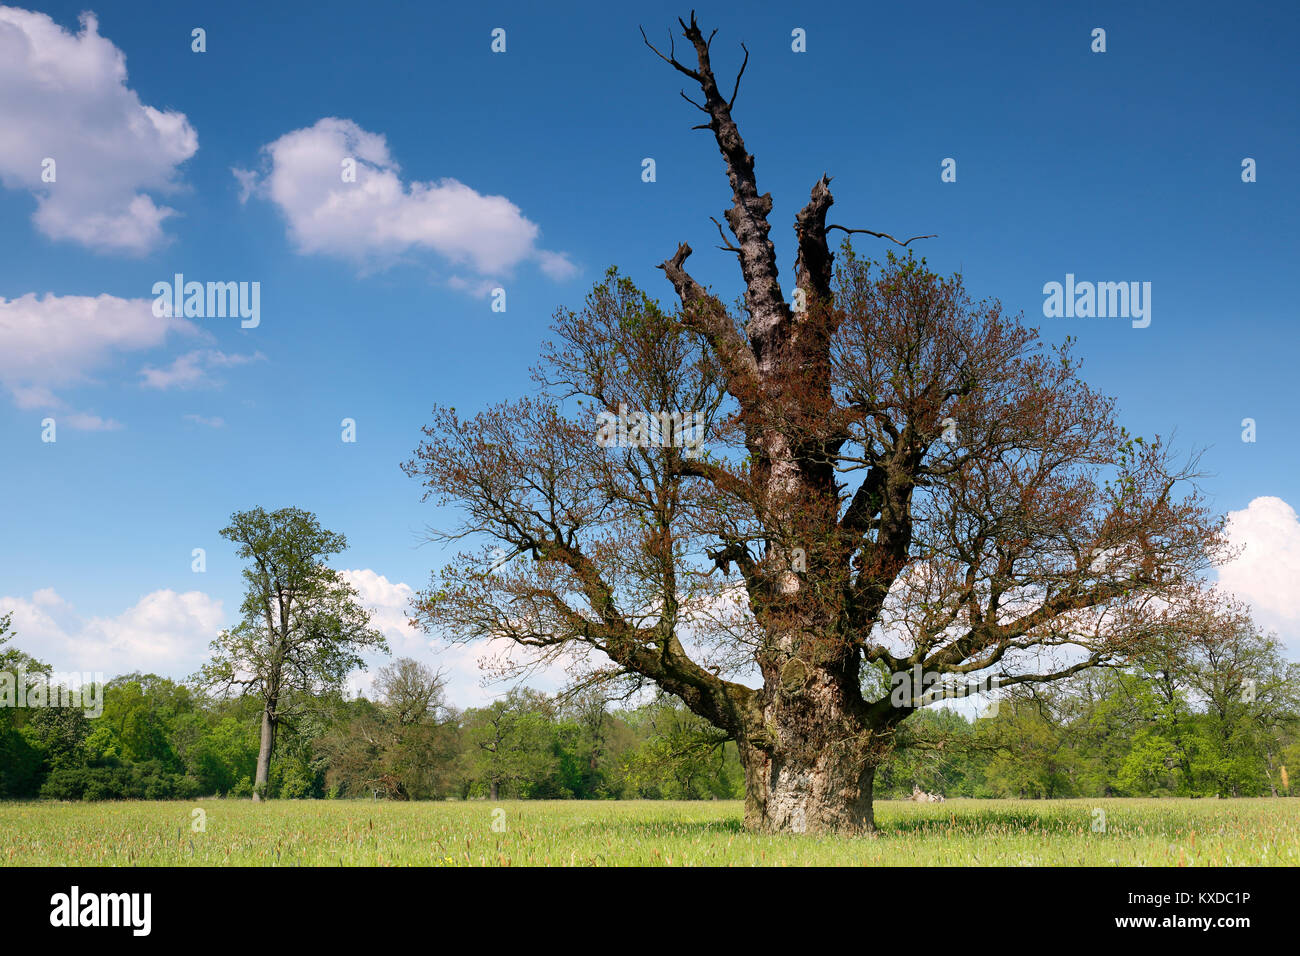 650 years old English oak (Quercus robur), blooming in spring, solitary tree, alluvial forest, Biosphere Reserve - Stock Image